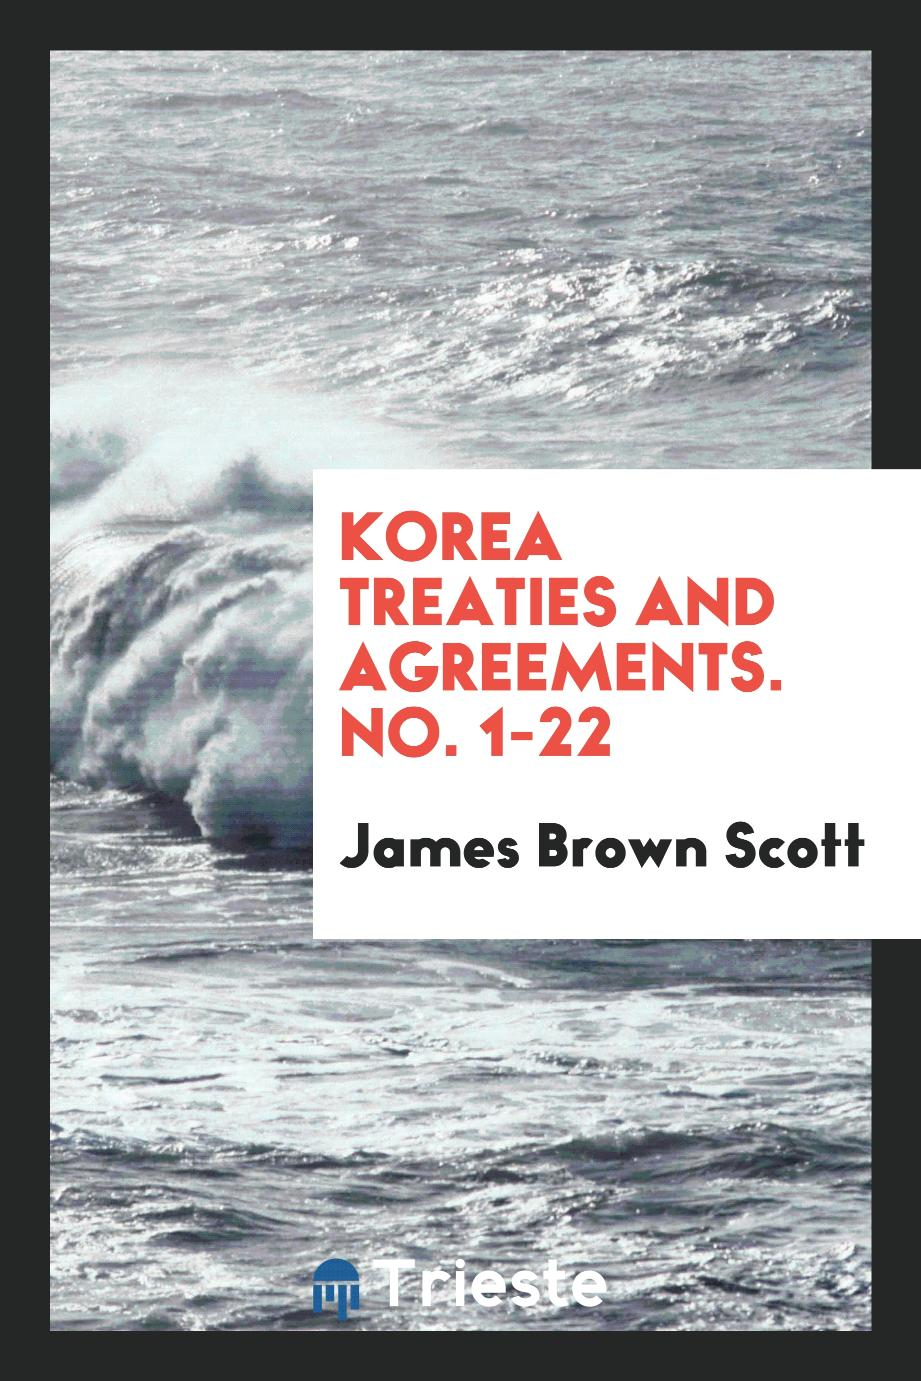 Korea treaties and agreements. No. 1-22